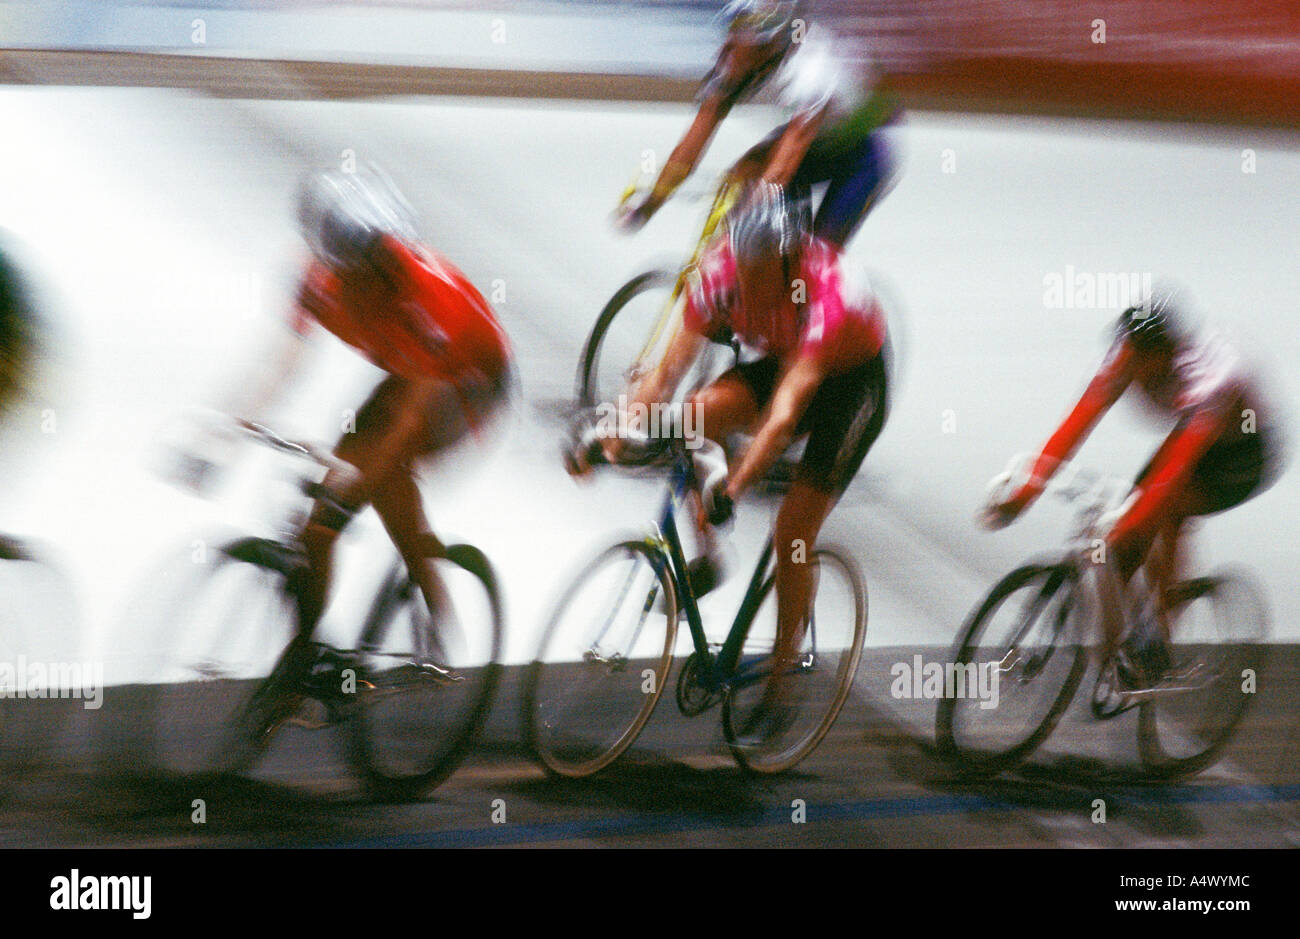 Indoor cycle race Sechs Tage Rennen at Stuttgart Baden Wuerttemberg Germany - Stock Image